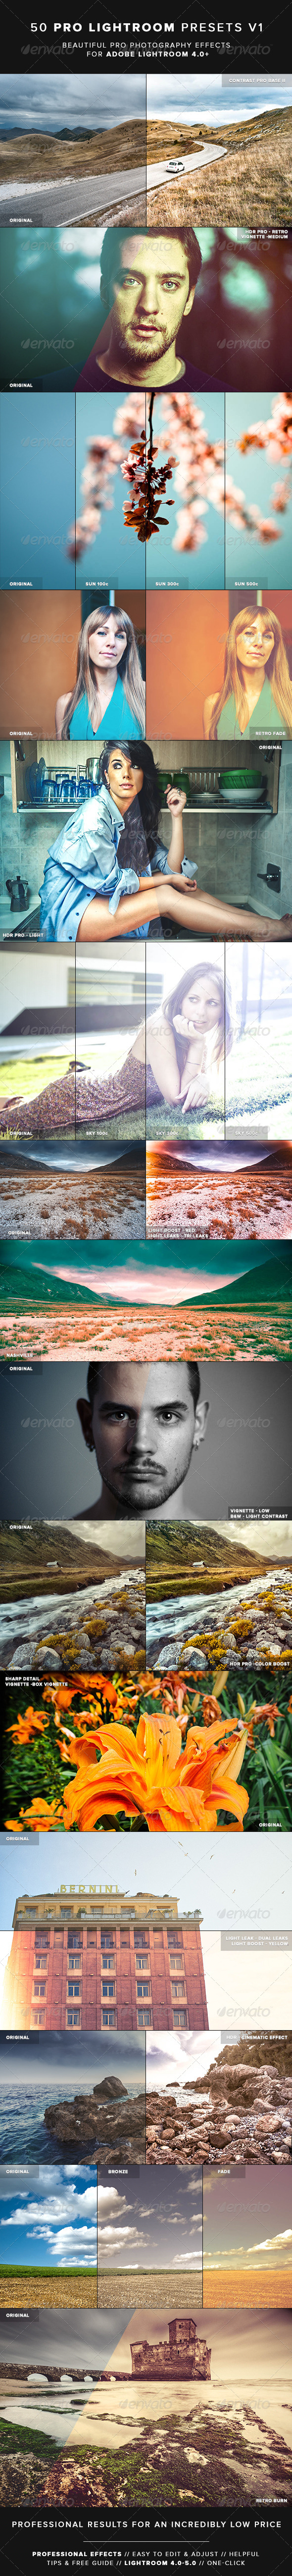 GraphicRiver 50 Pro Lightroom Presets V1 5615802